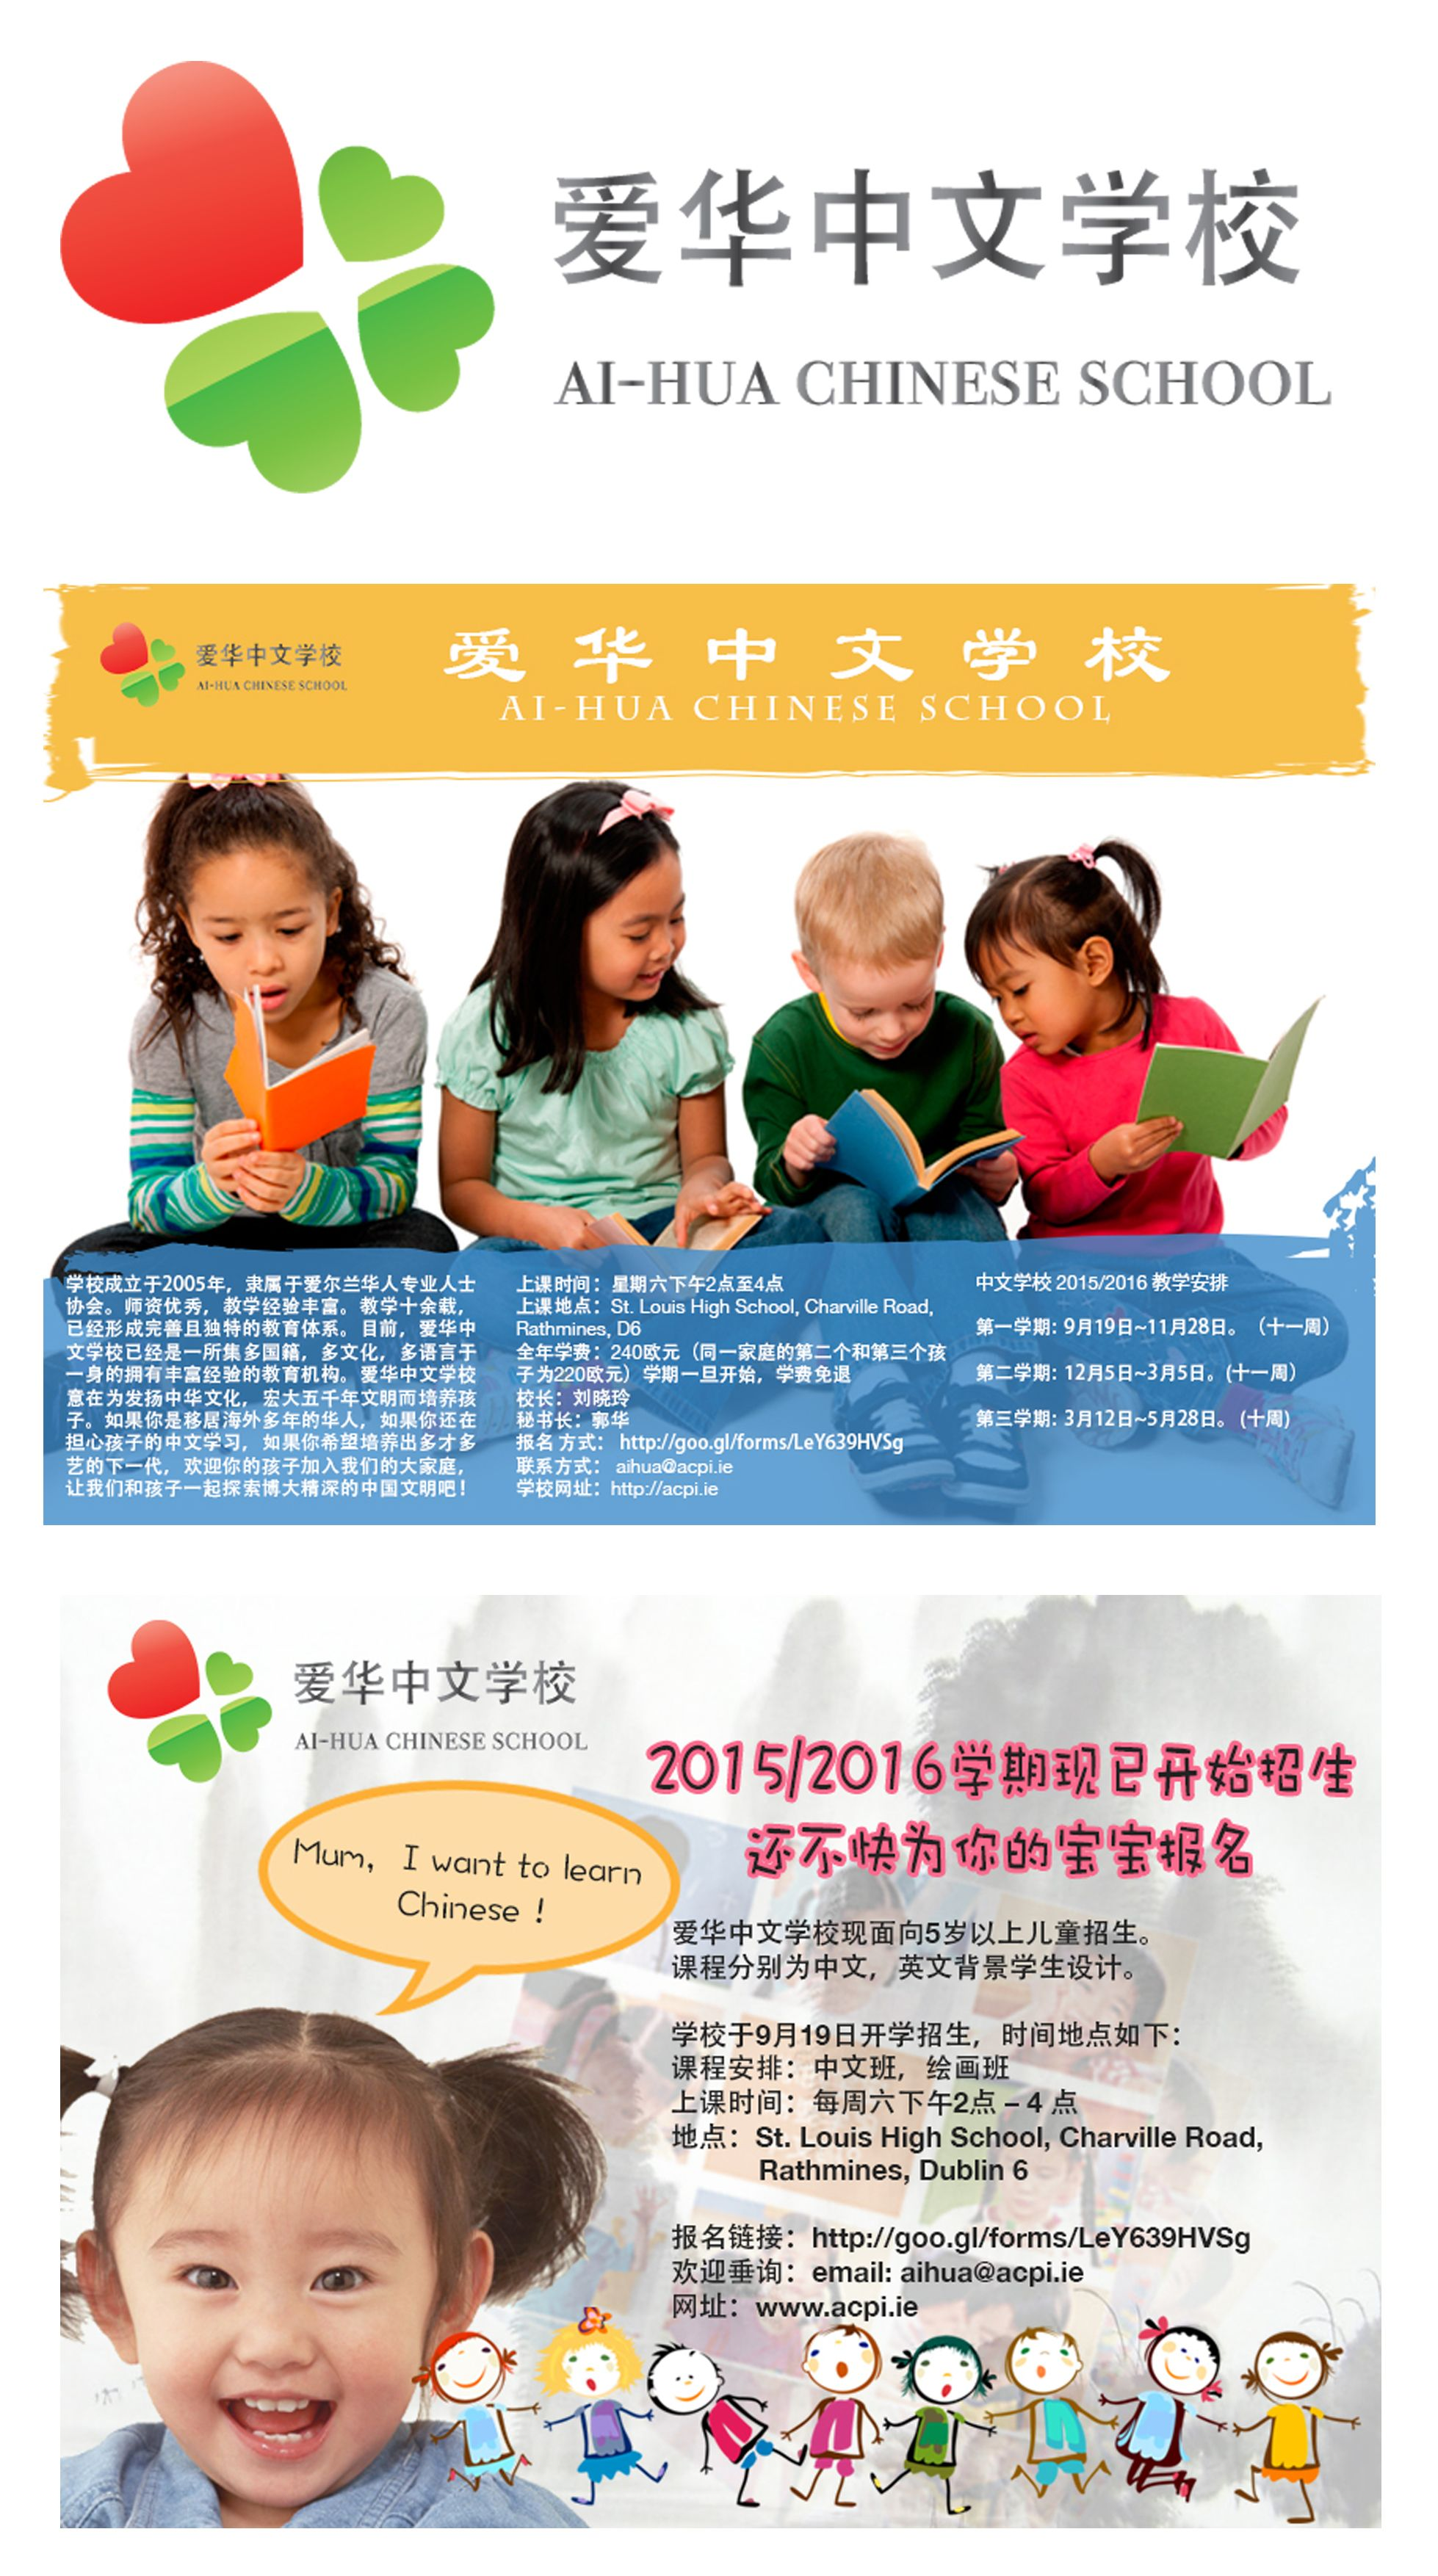 Logo & Poster - AI-HUA CHINESE SCHOOL | X-Design | Chinese, Chinese